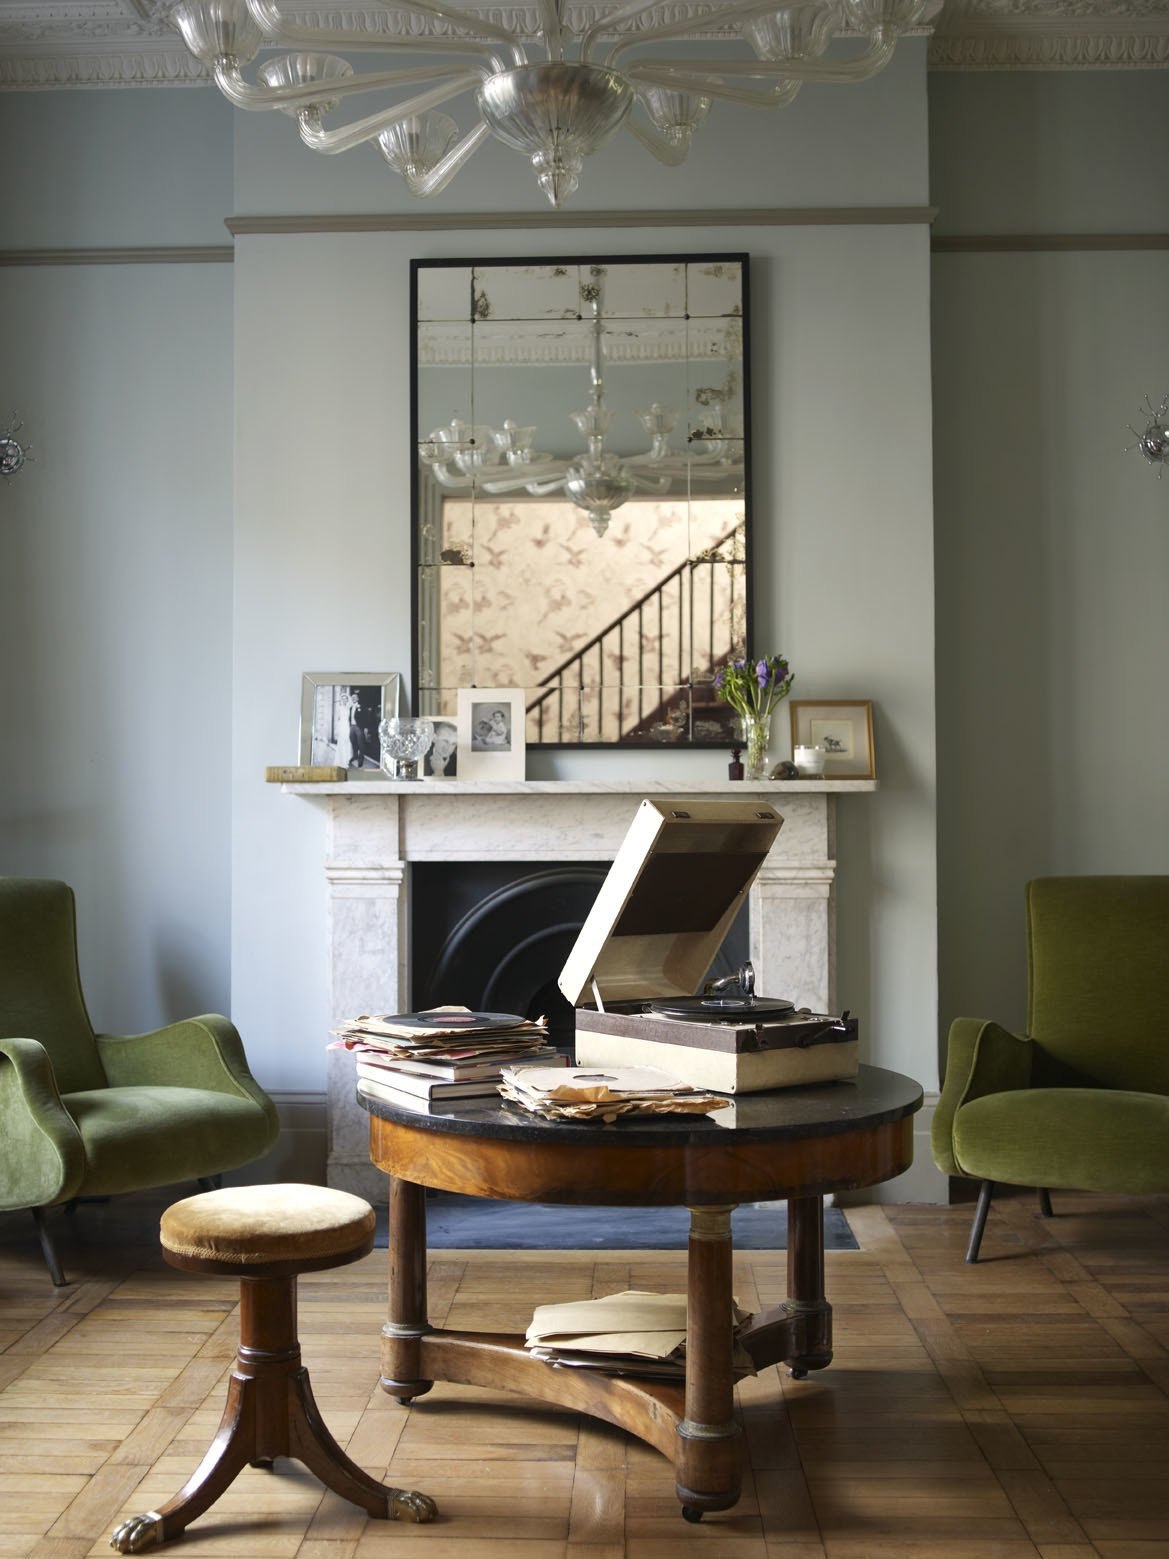 Leading directly off the entrance hall, this simple but elegant sitting room was originally the kitchen. The room has been redesigned for entertaining, and revolves around a 1946 Decca gramophone on which the owner plays his collection of 78s at cocktail parties.  Photo 6 of 12 in A Gracious London Terrace House Is Reborn with Salvaged Materials